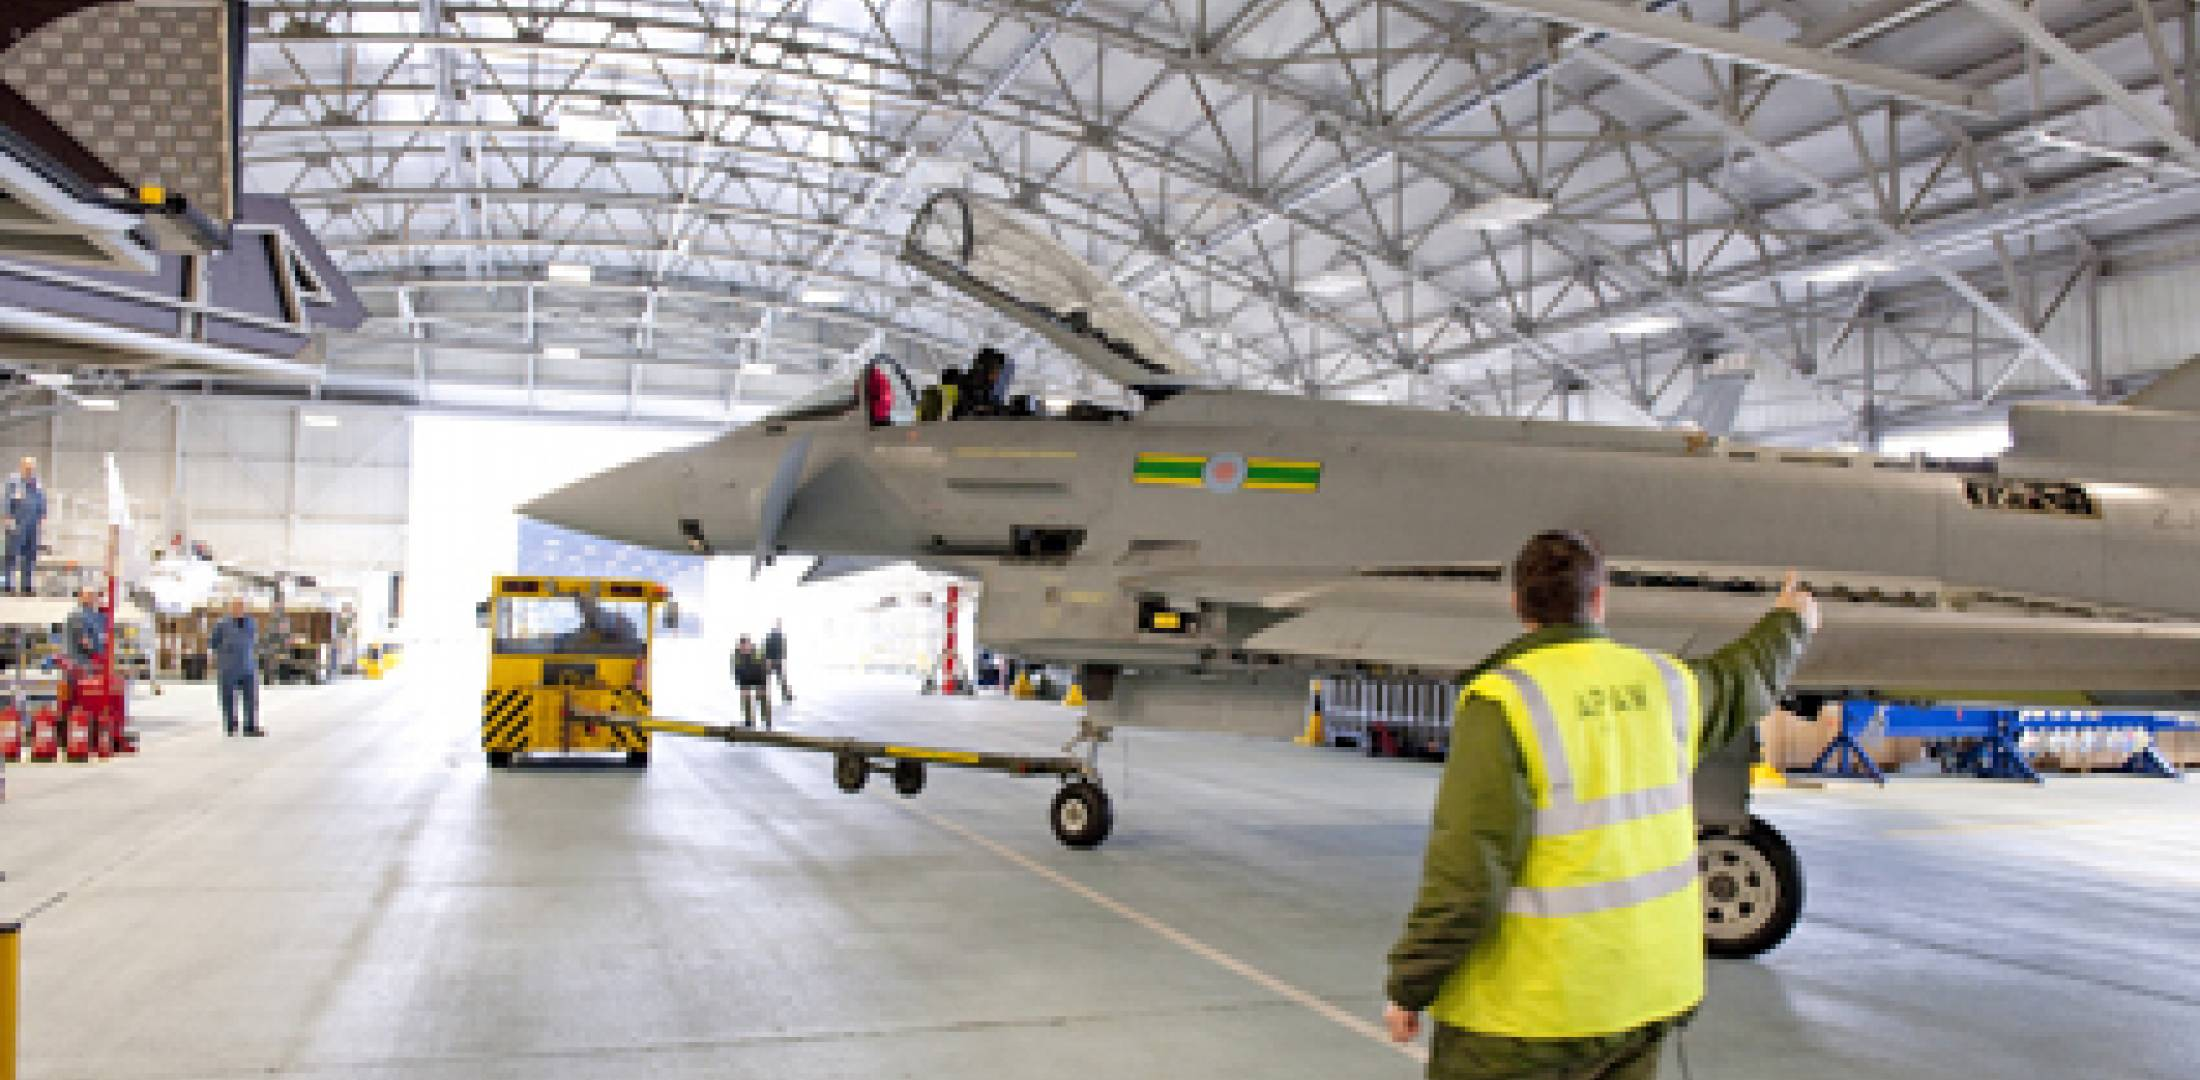 Early block RAF Eurofighter Typhoons are undergoing the R2 conversion process...